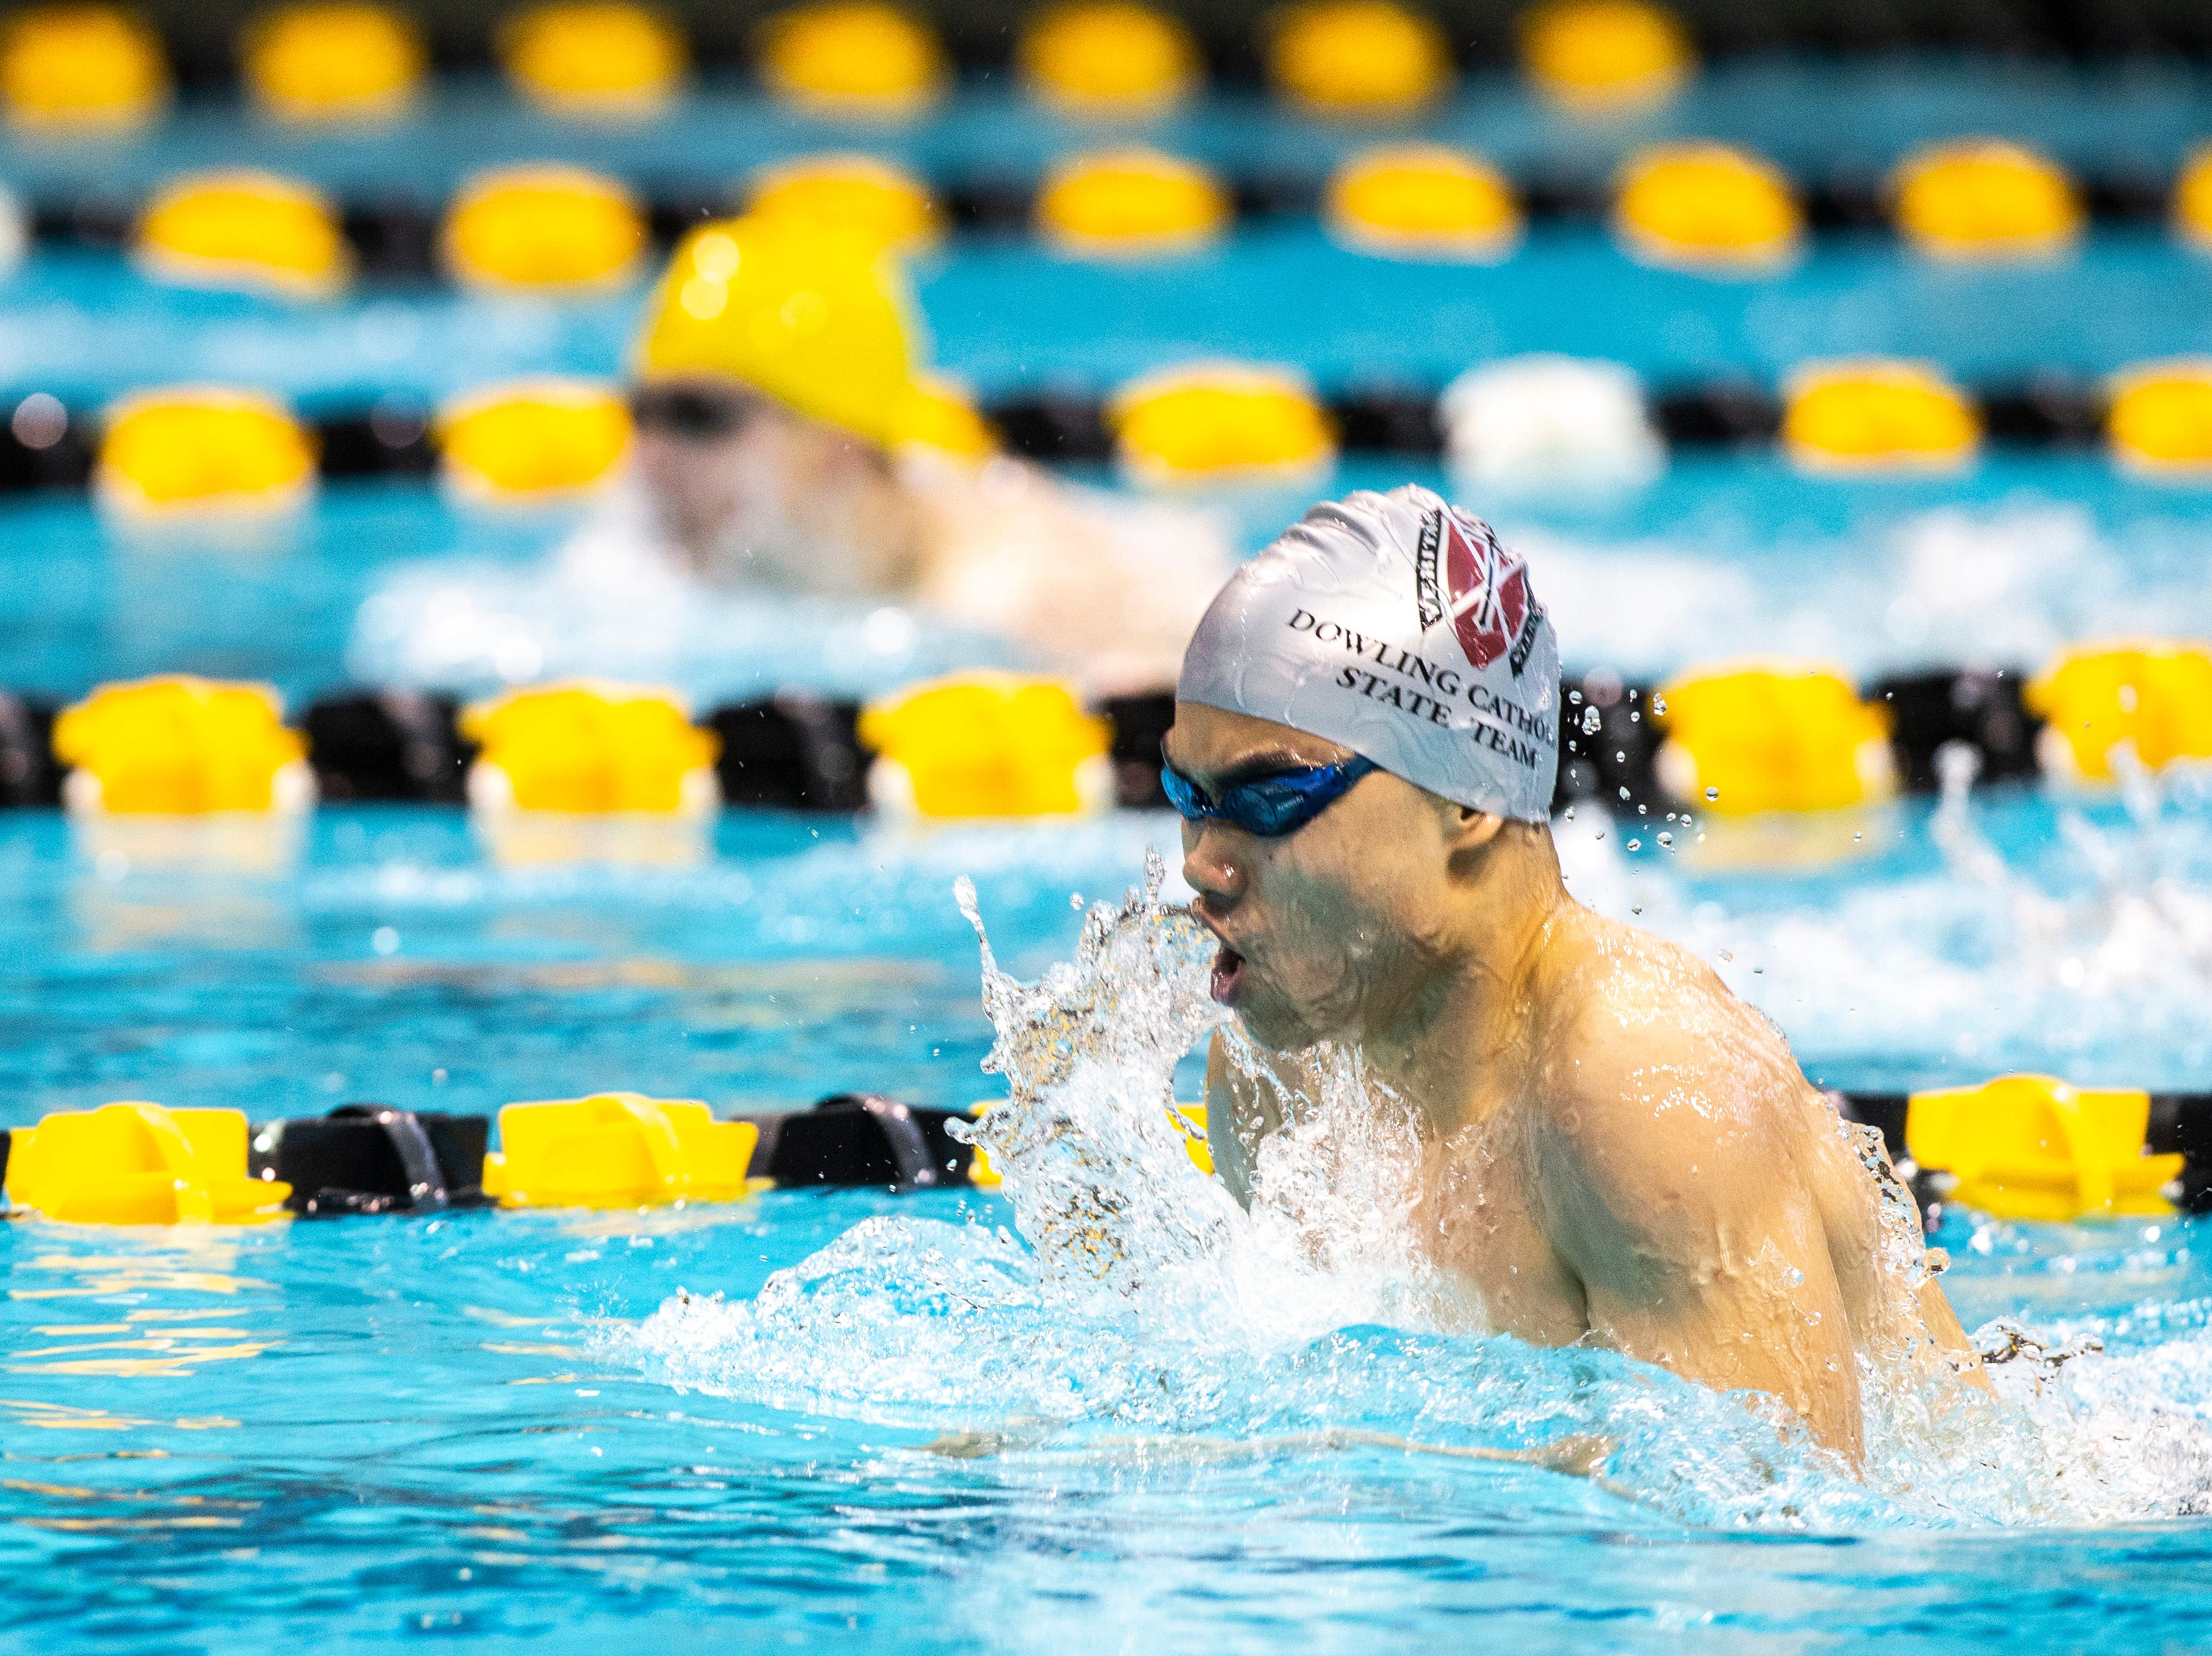 Dowling Catholic senior Jerry Xu competes in the during the Iowa boys' state swimming regional championship meet on Saturday, Feb. 9, 2019 at Campus Recreation and Wellness Center on the University of Iowa campus in Iowa City, Iowa. Xu finished eighth overall, with a time of 1:00.46.